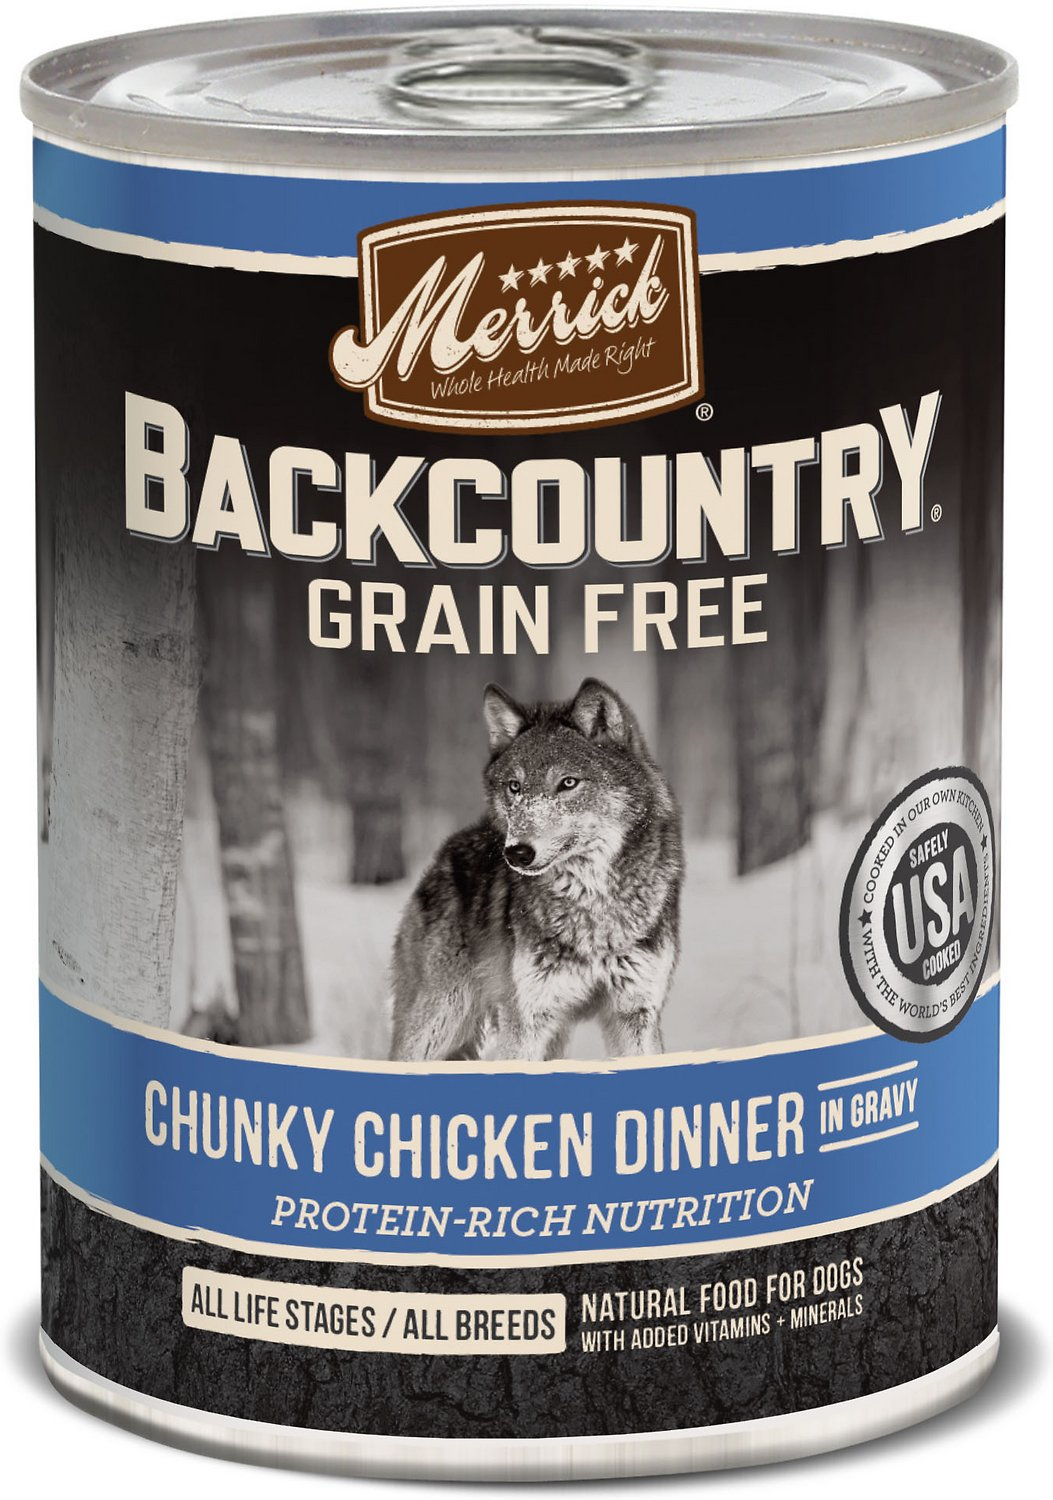 Merrick Backcountry Grain-Free Chunky Chicken Dinner in Gravy Canned Dog Food, 12.7-oz